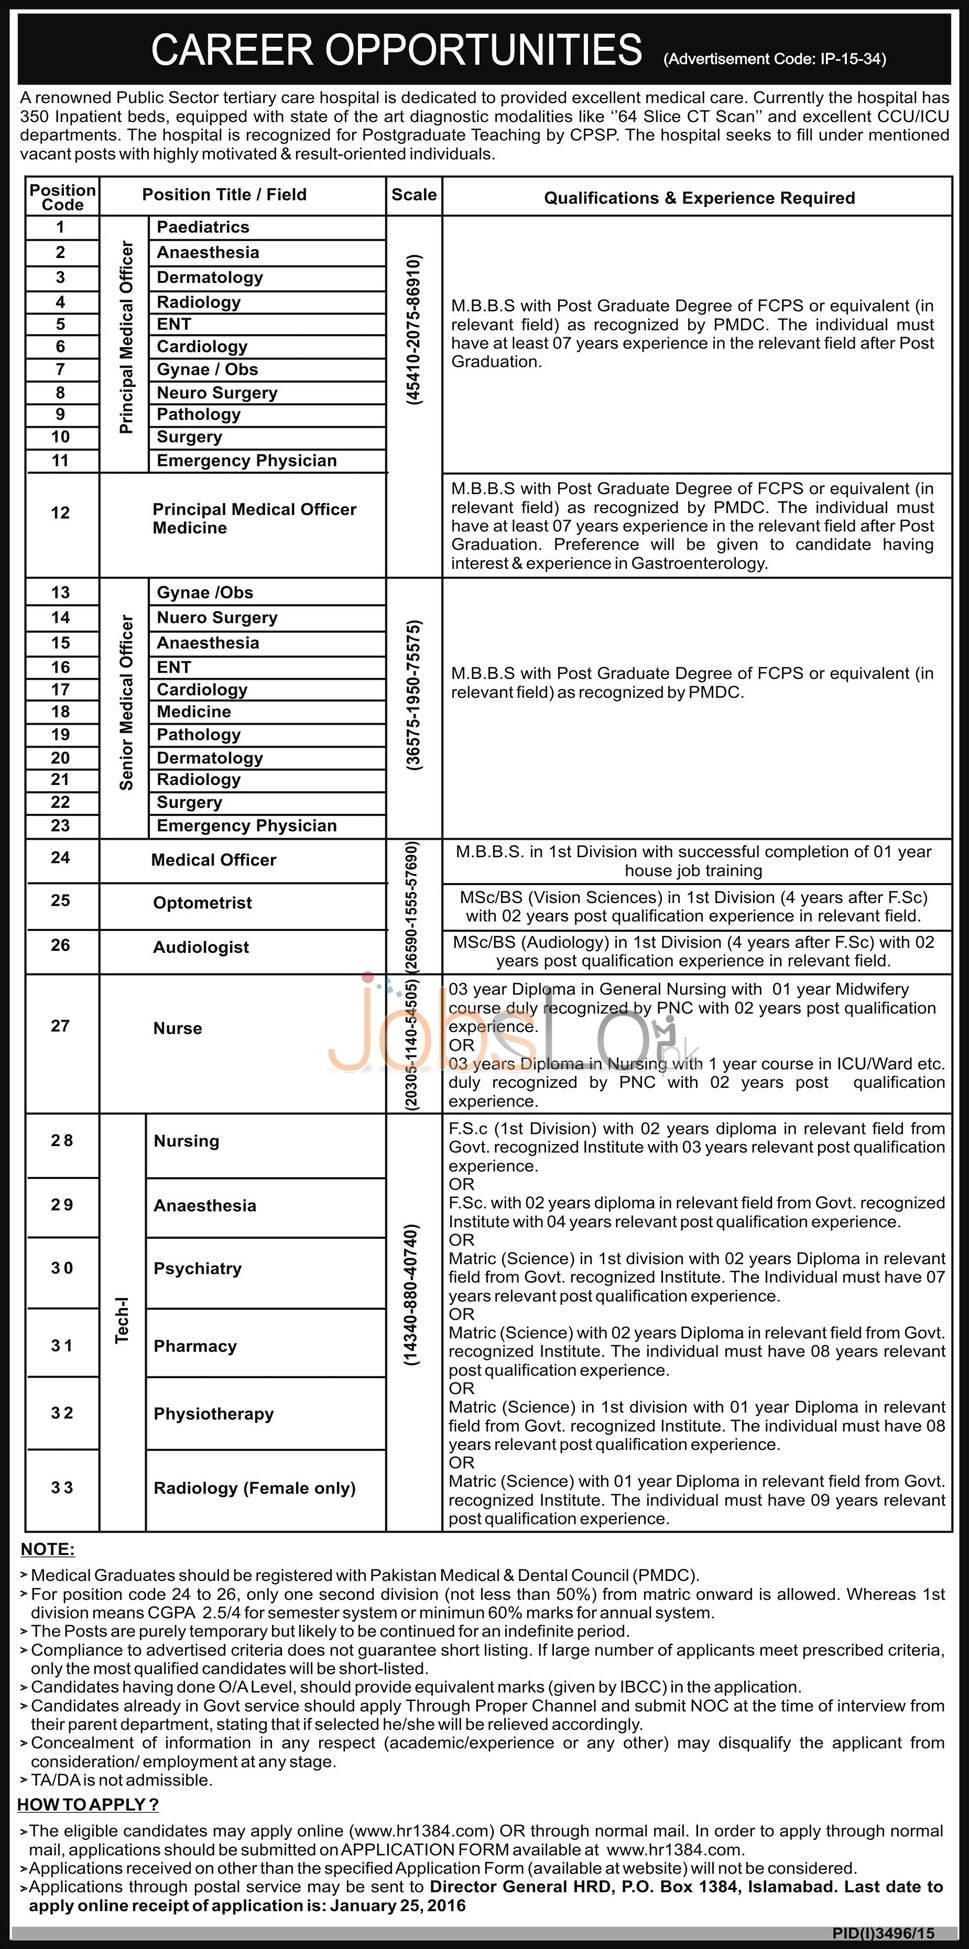 Latest Advertisment Public Sector Tertiary Hospital Care Jobs 2016